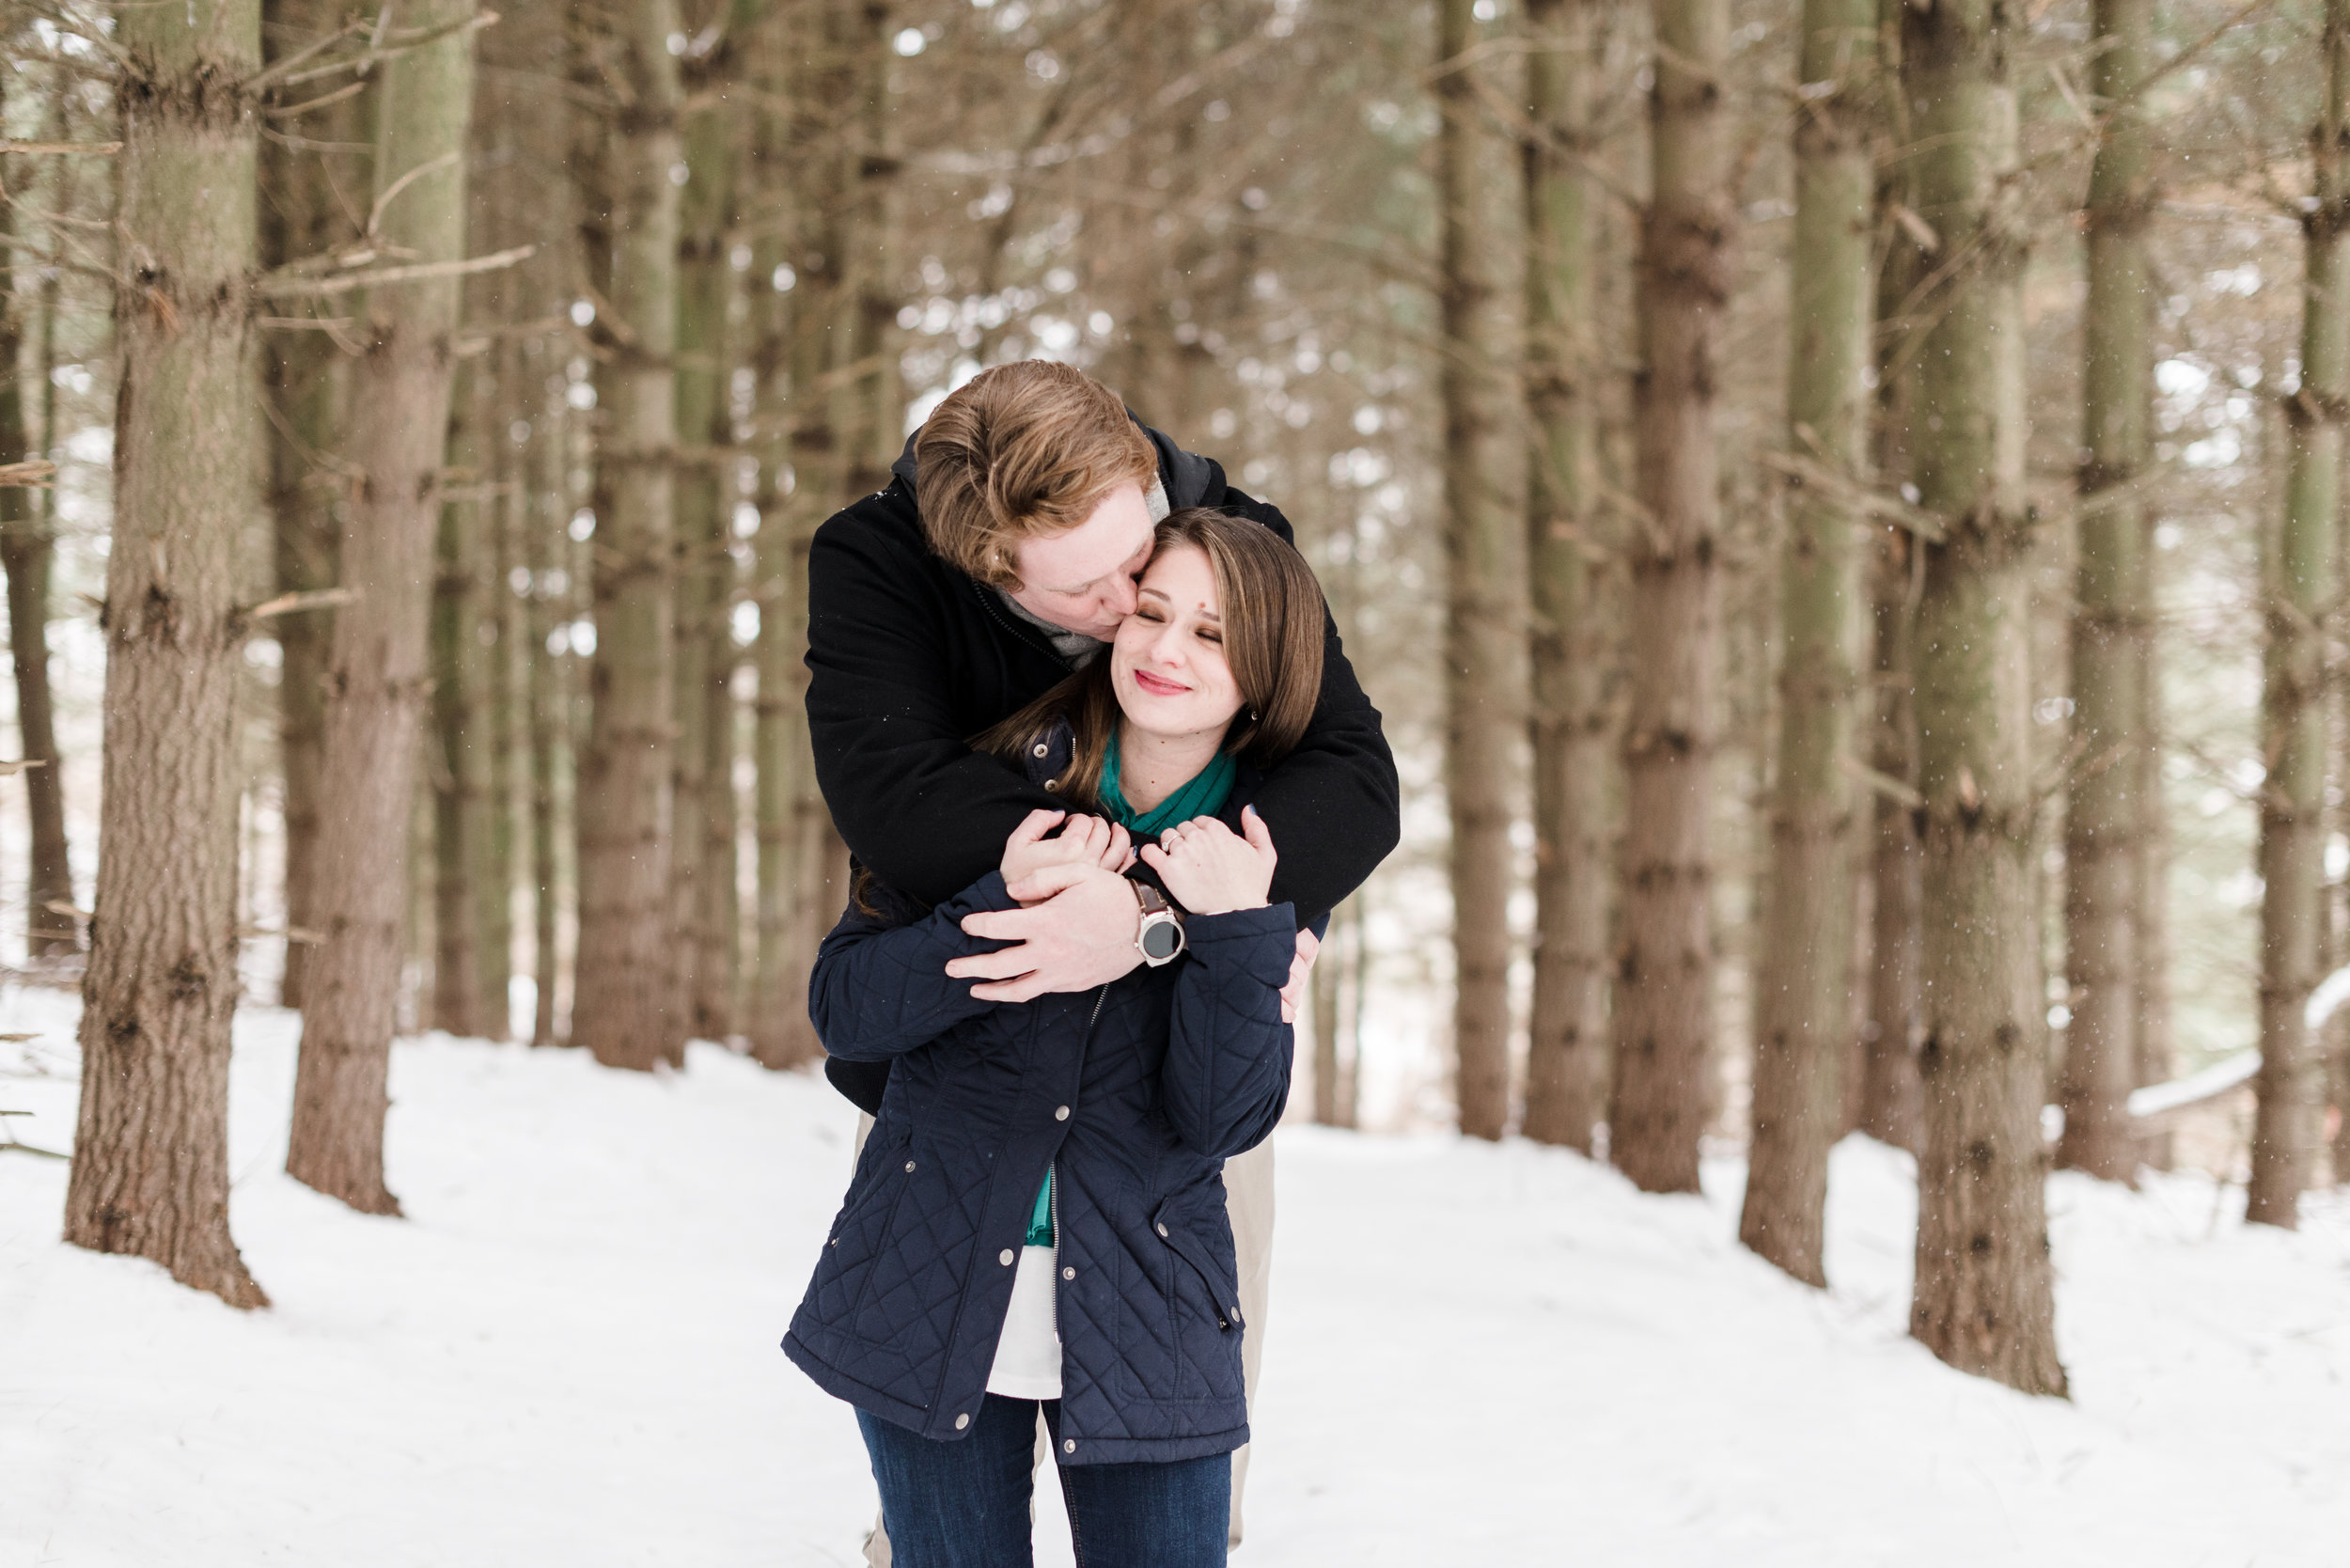 Kirsten-Smith-Photography-Andrew-Kait-Engaged-27.jpg